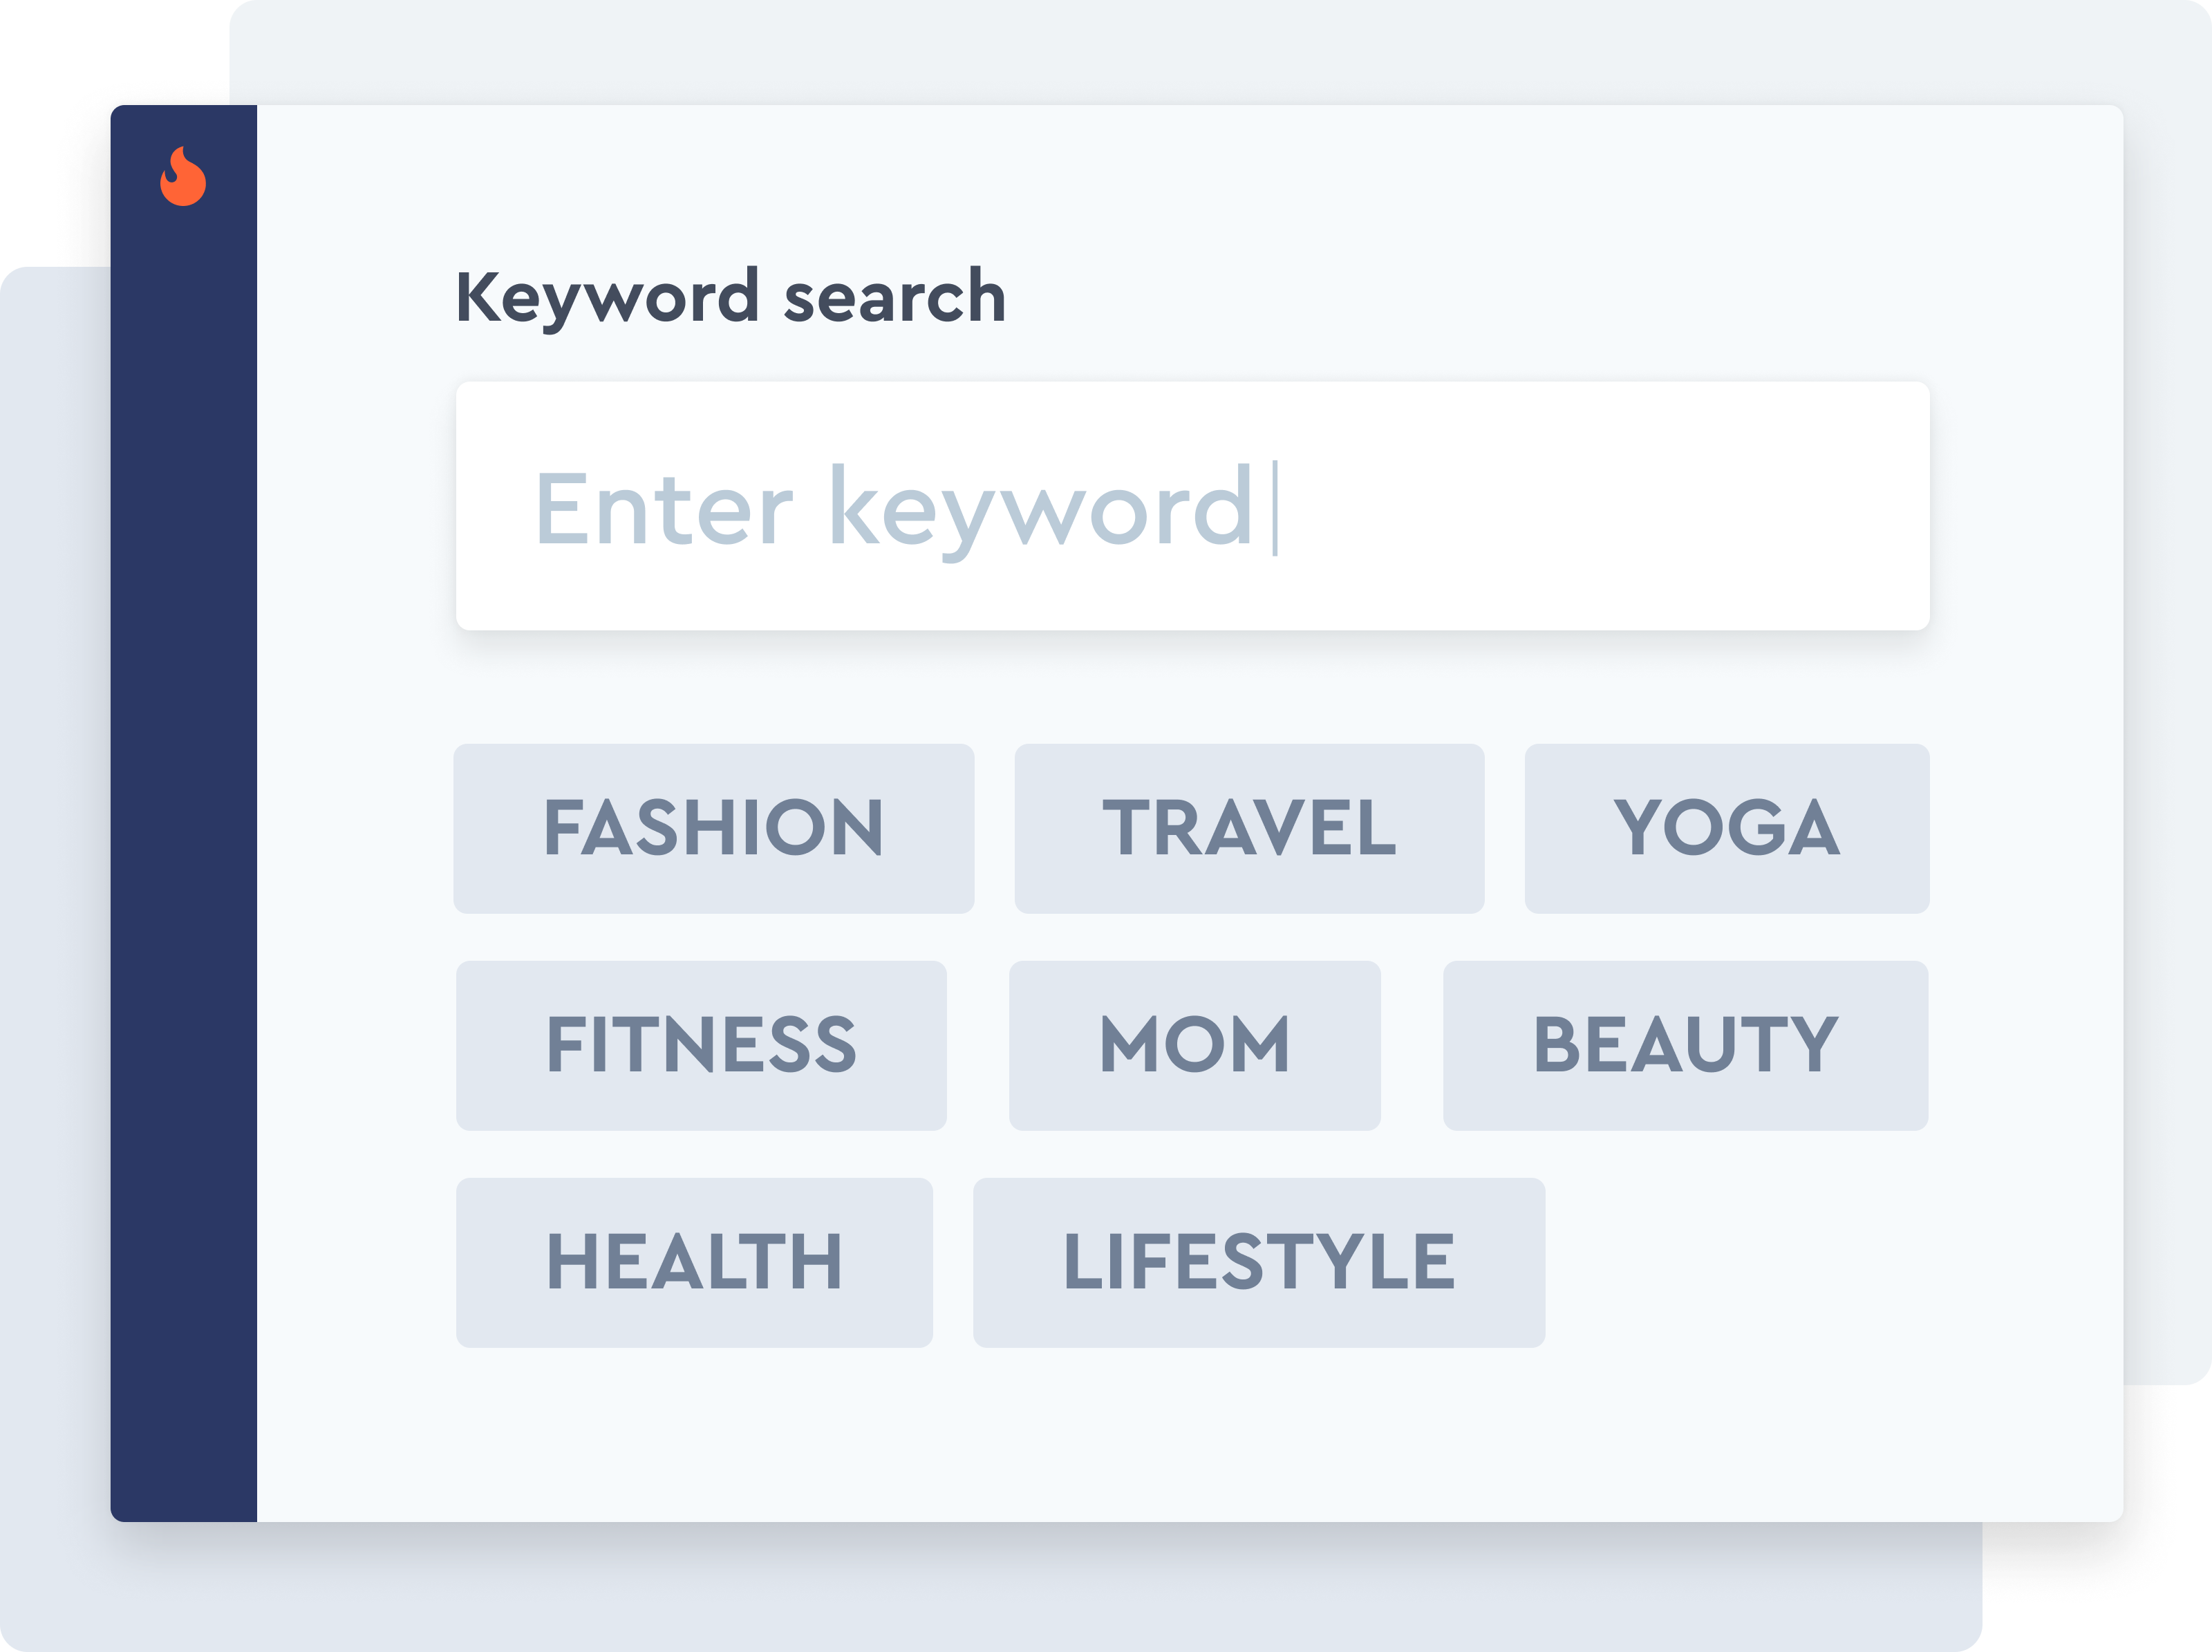 Narrow your search using keywords